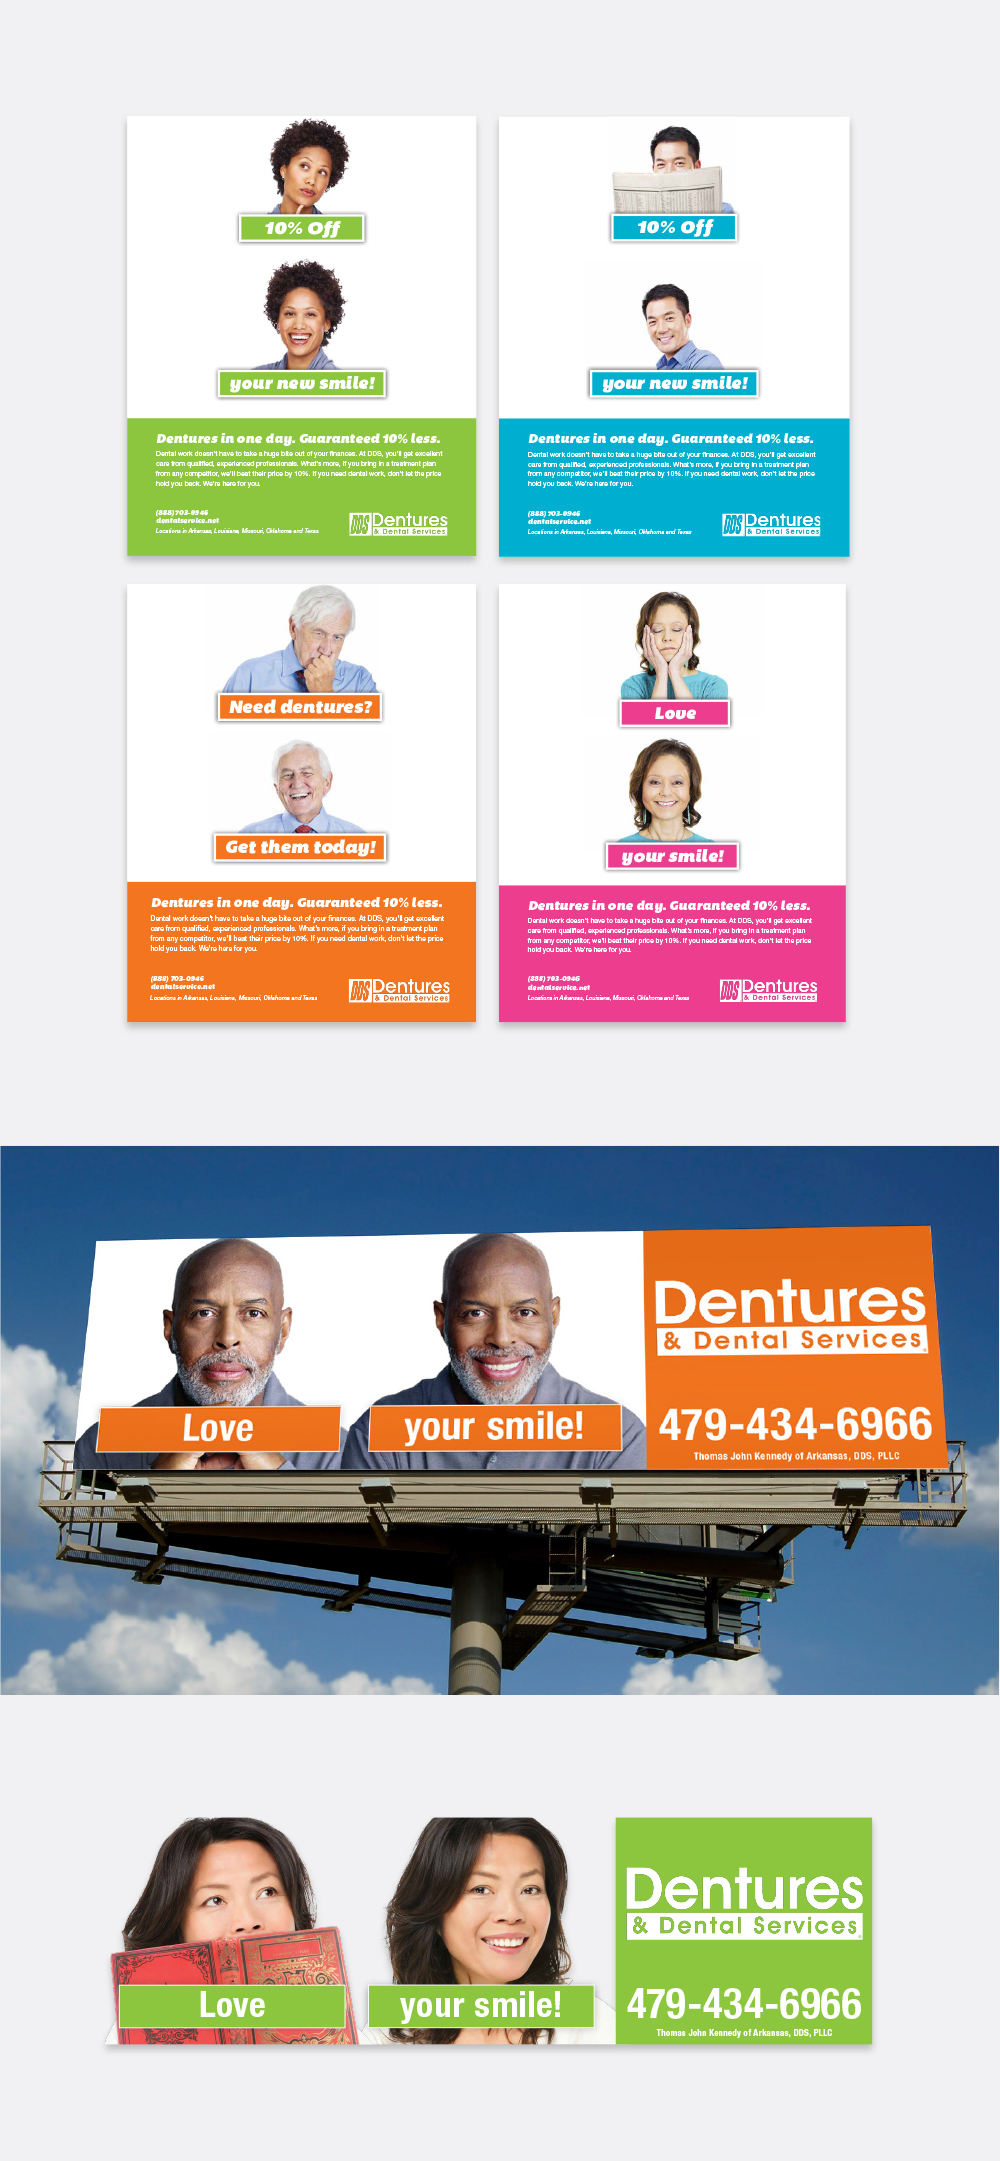 DDS_2_AdvertisingCampaign